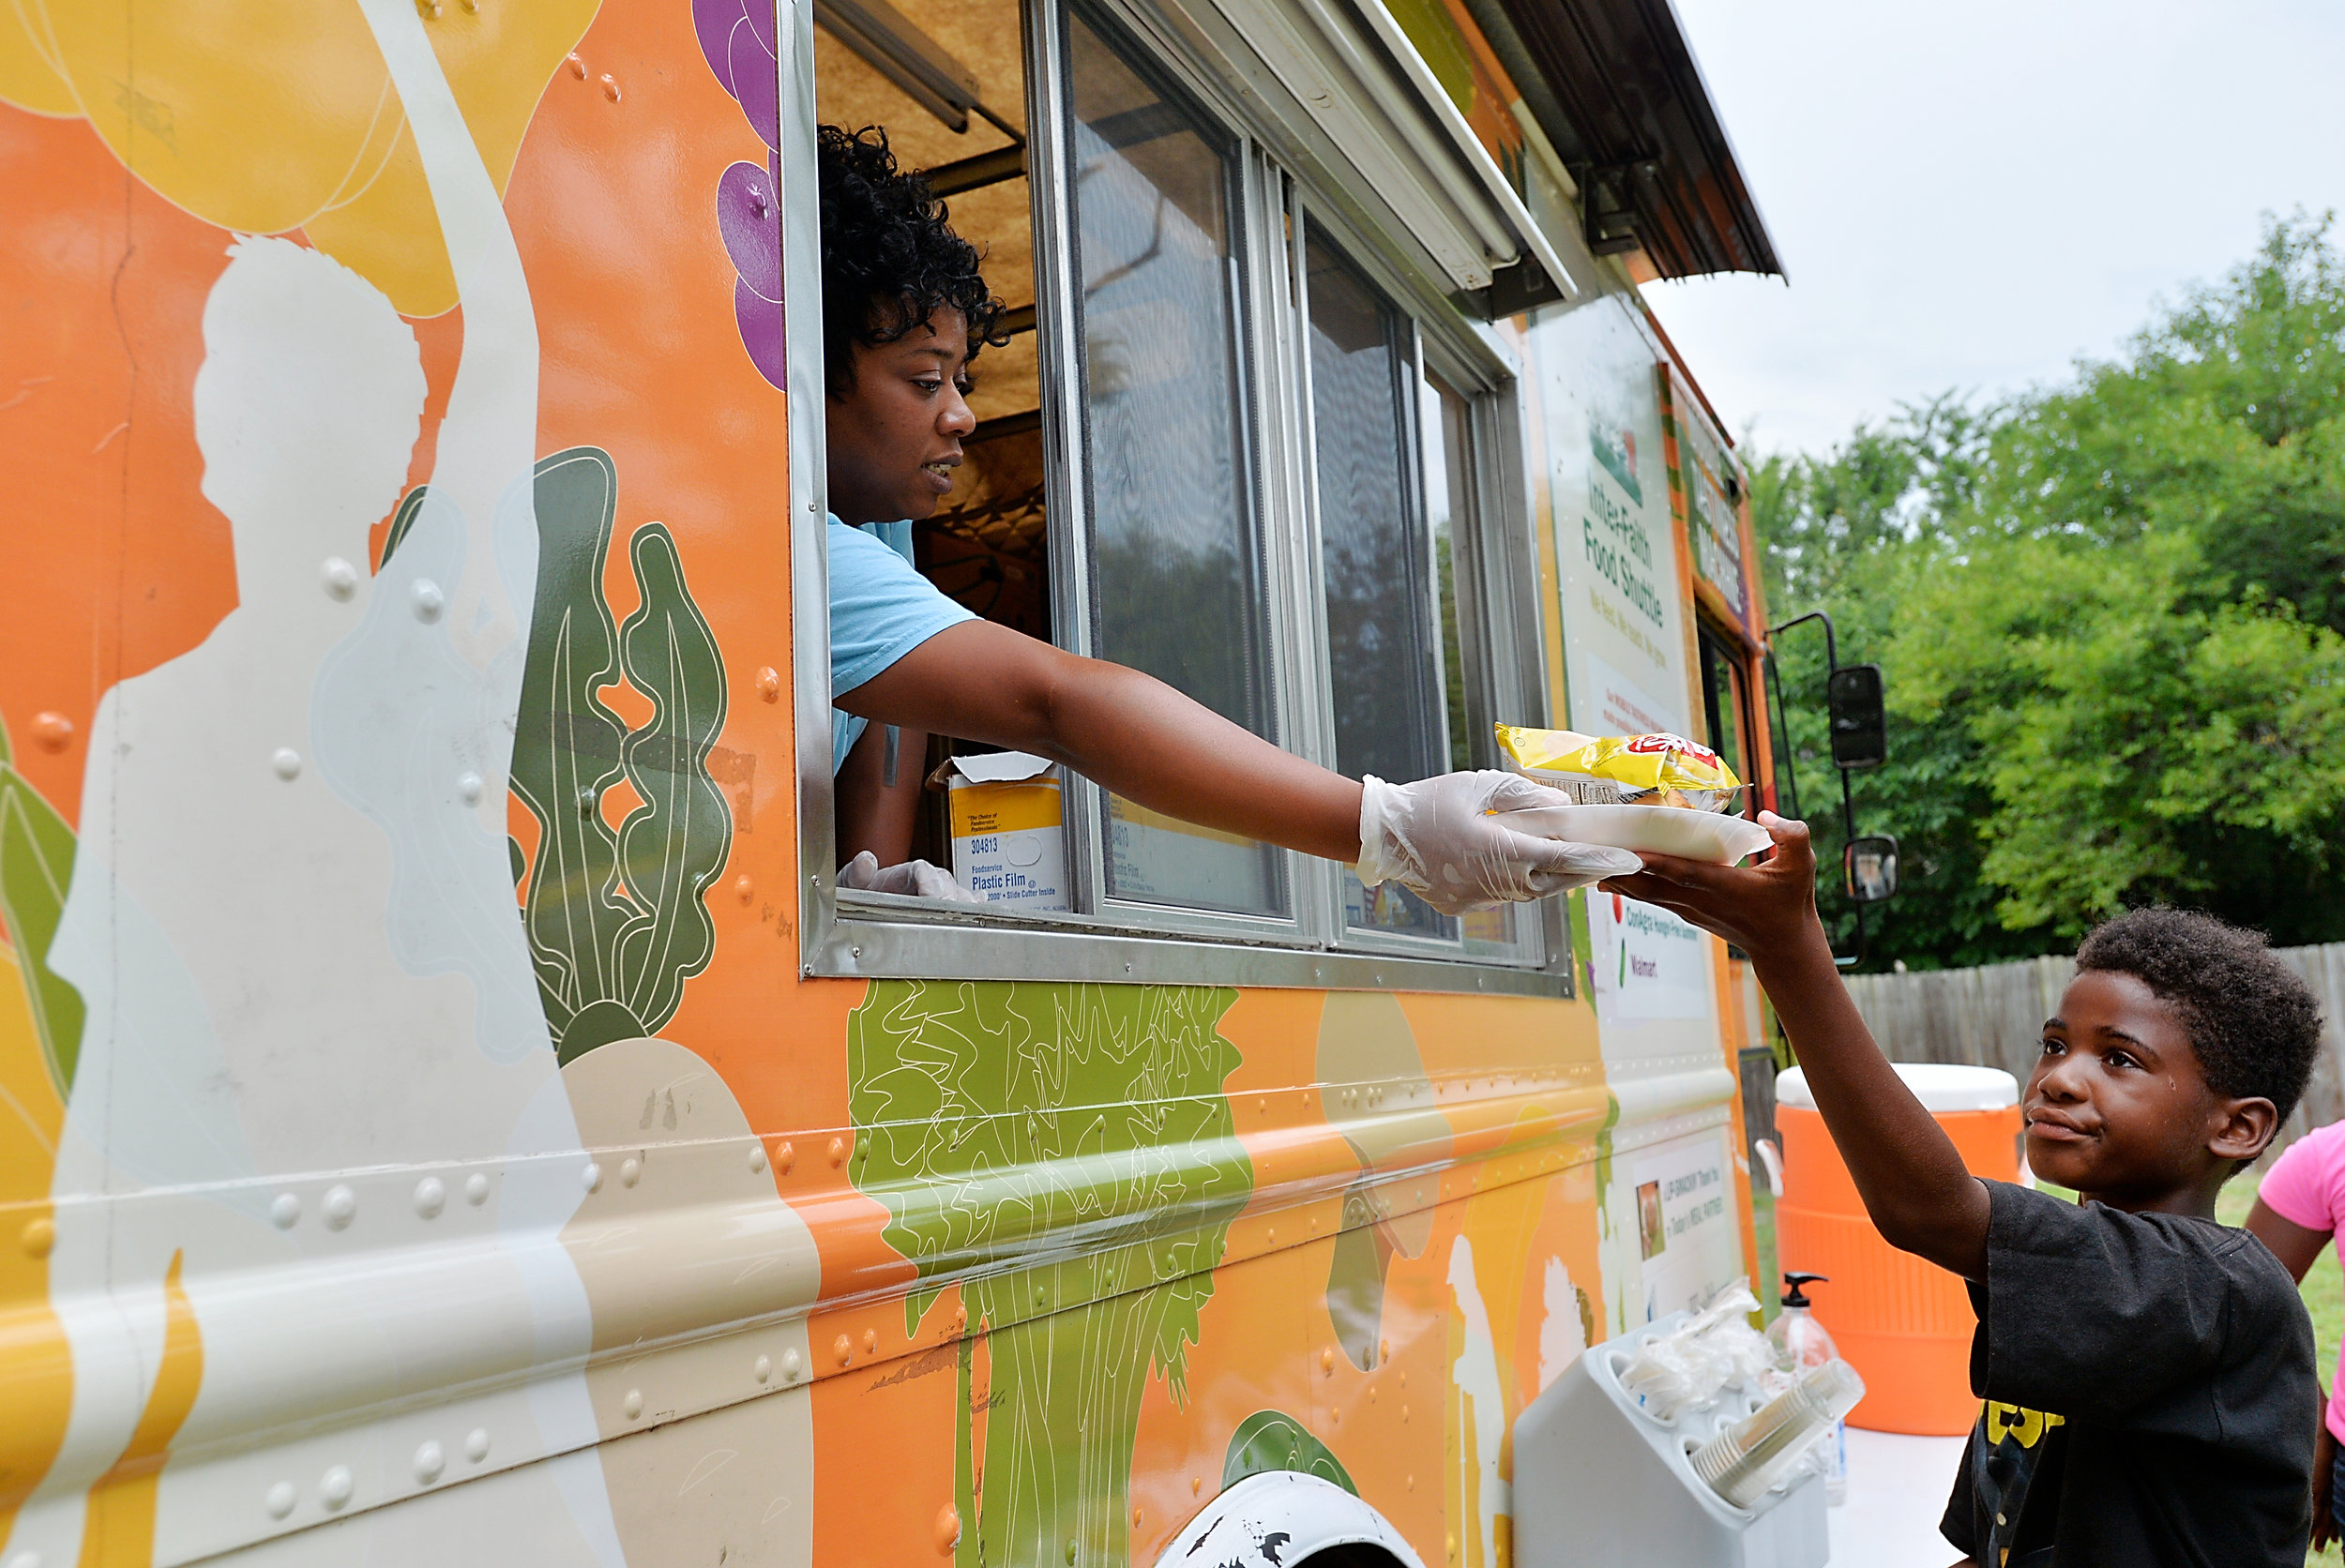 Inter-Faith Food Shuttle's Mobile Tastiness Machine at Camden Street Learning Garden in Raleigh, N.C. on July 23, 2016. (Photo by Sara D. Davis)